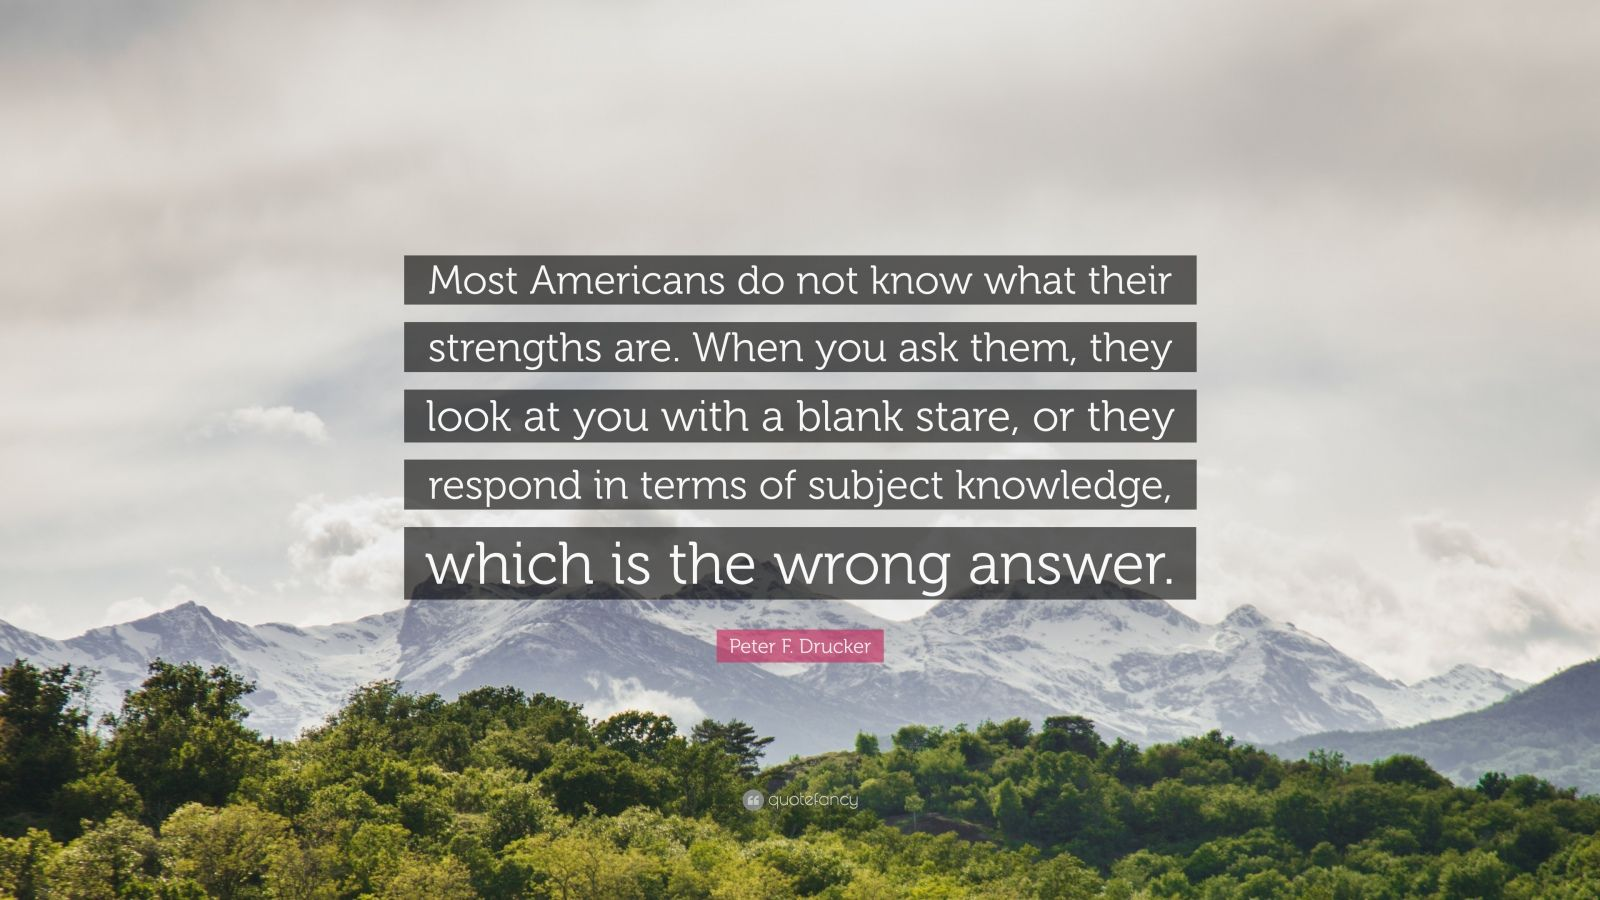 """Peter F. Drucker Quote: """"Most Americans do not know what their strengths are. When you ask them, they look at you with a blank stare, or they respond in terms of subject knowledge, which is the wrong answer."""""""